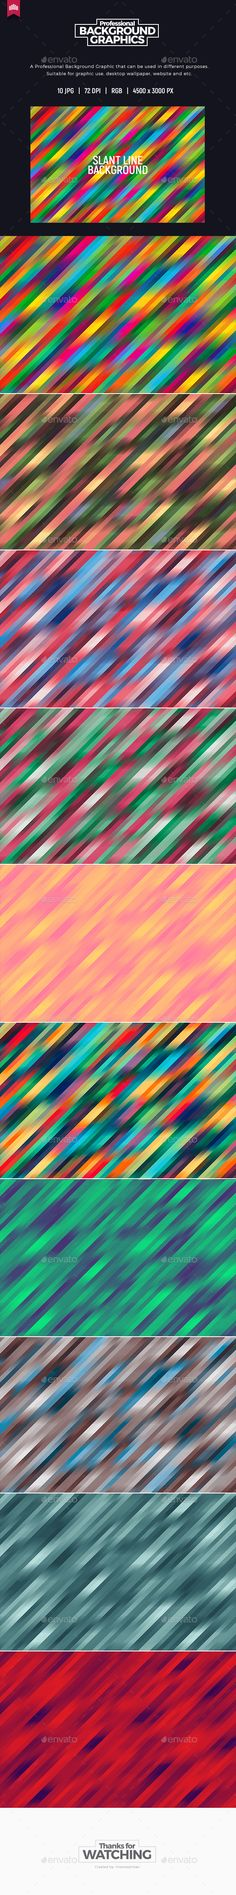 SLANT LINES BACKGROUNDSPECIFICATION:10 Jpeg Backgrounds 4500x3000 pixels R.G.B. color Have a question or a suggestion? Feel free t